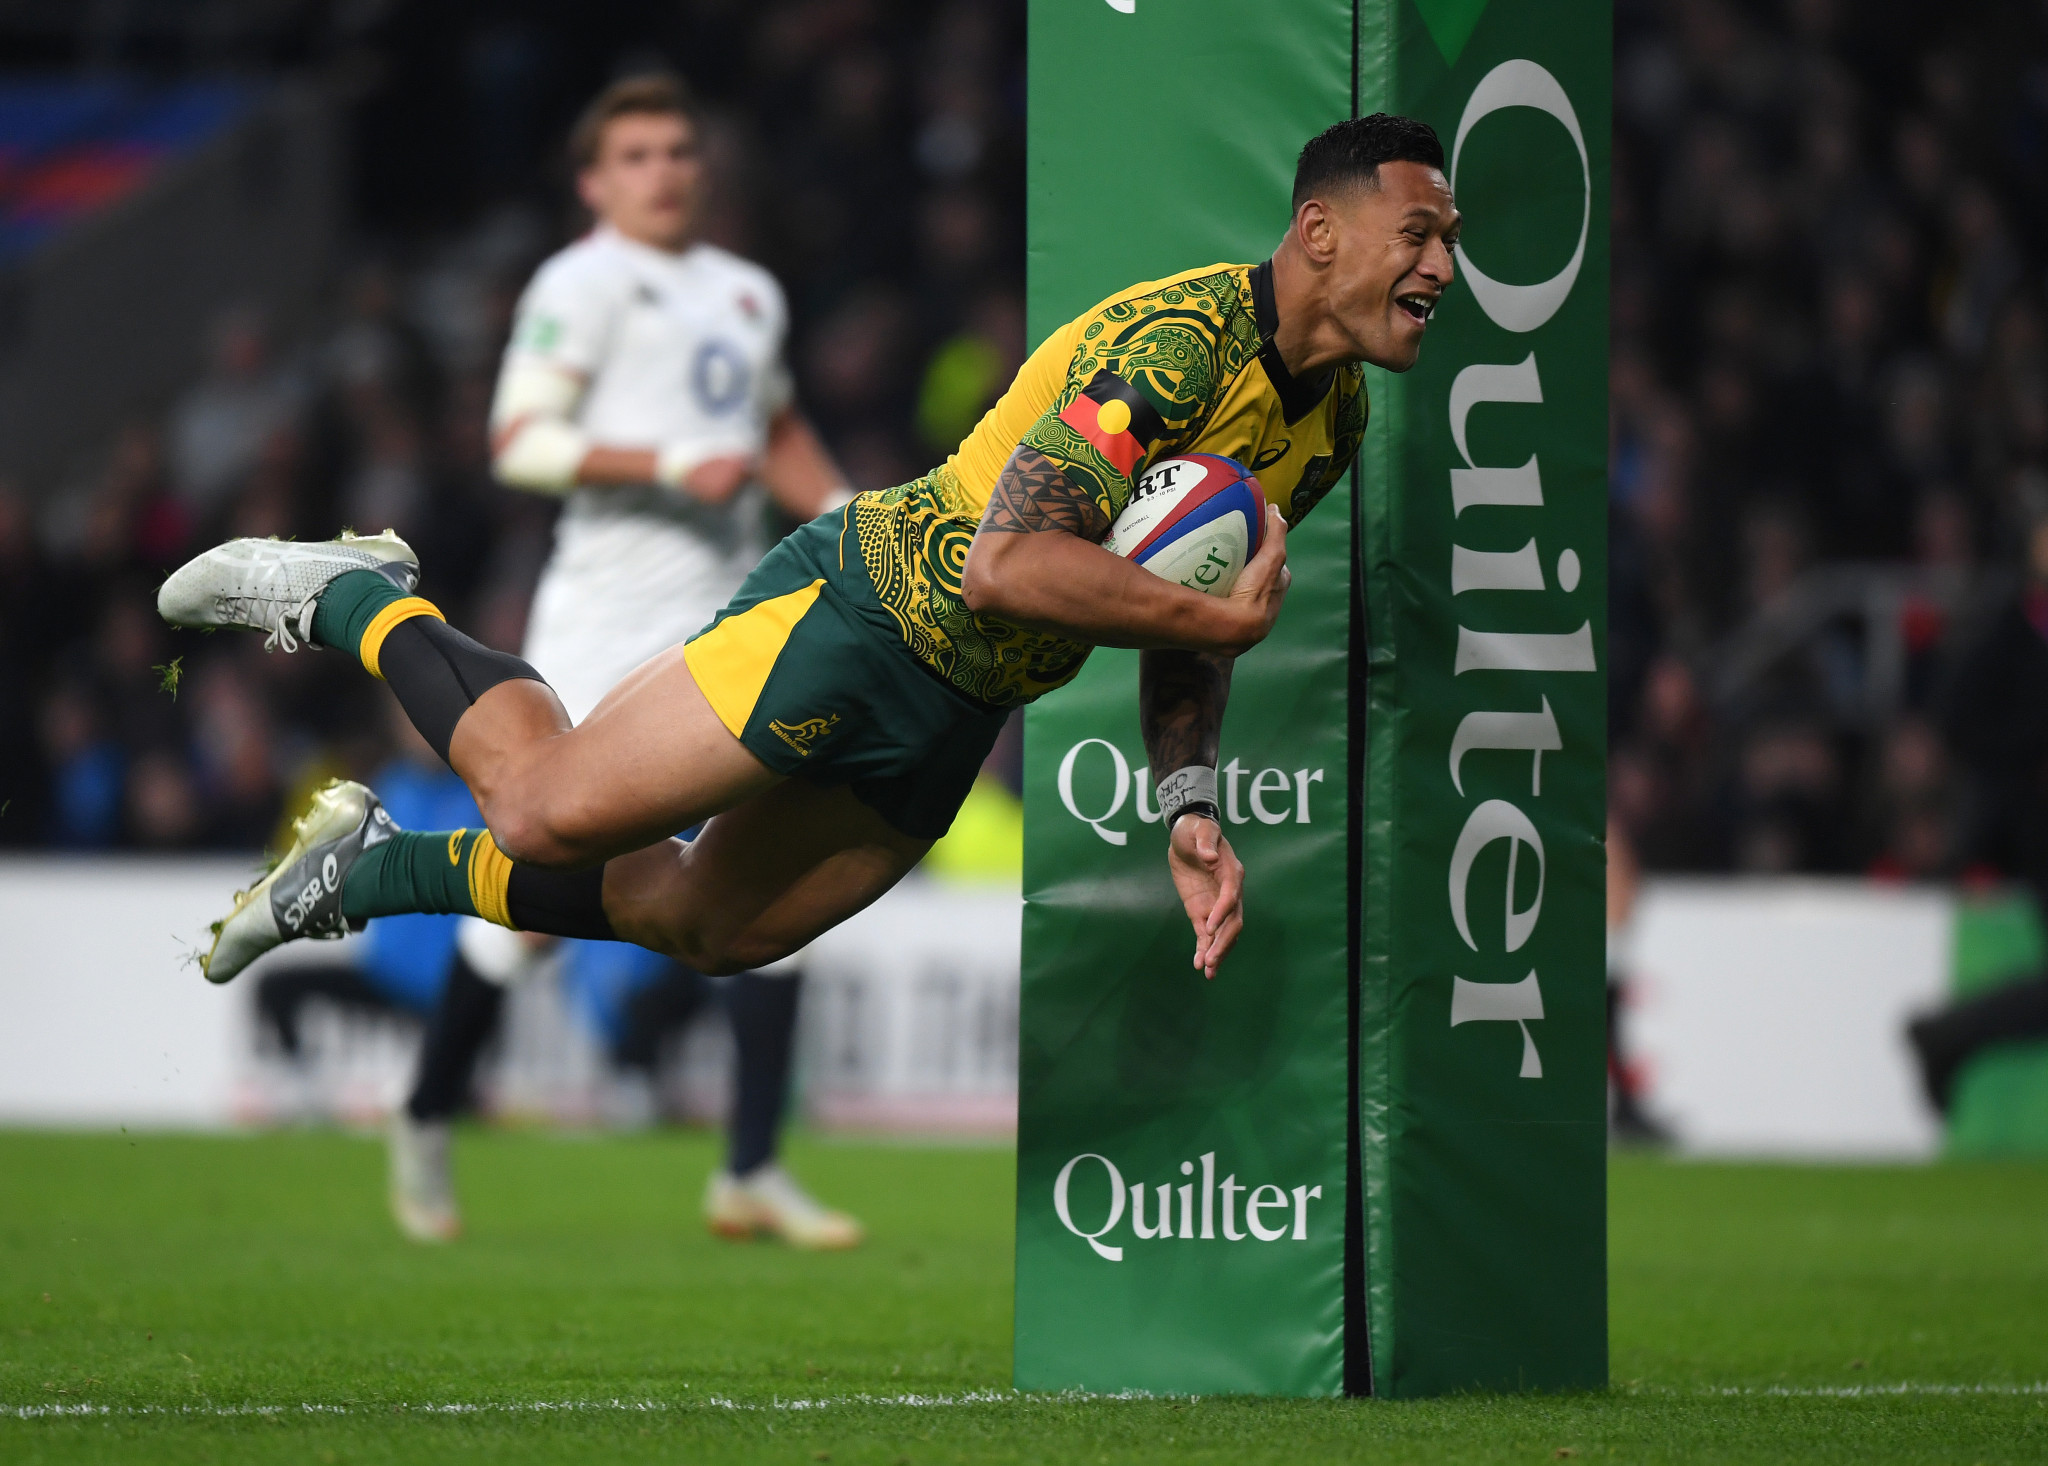 Israel Folau's career appears over after a three-person panel upheld the decision from Rugby Australia to sack the player ©Getty Images